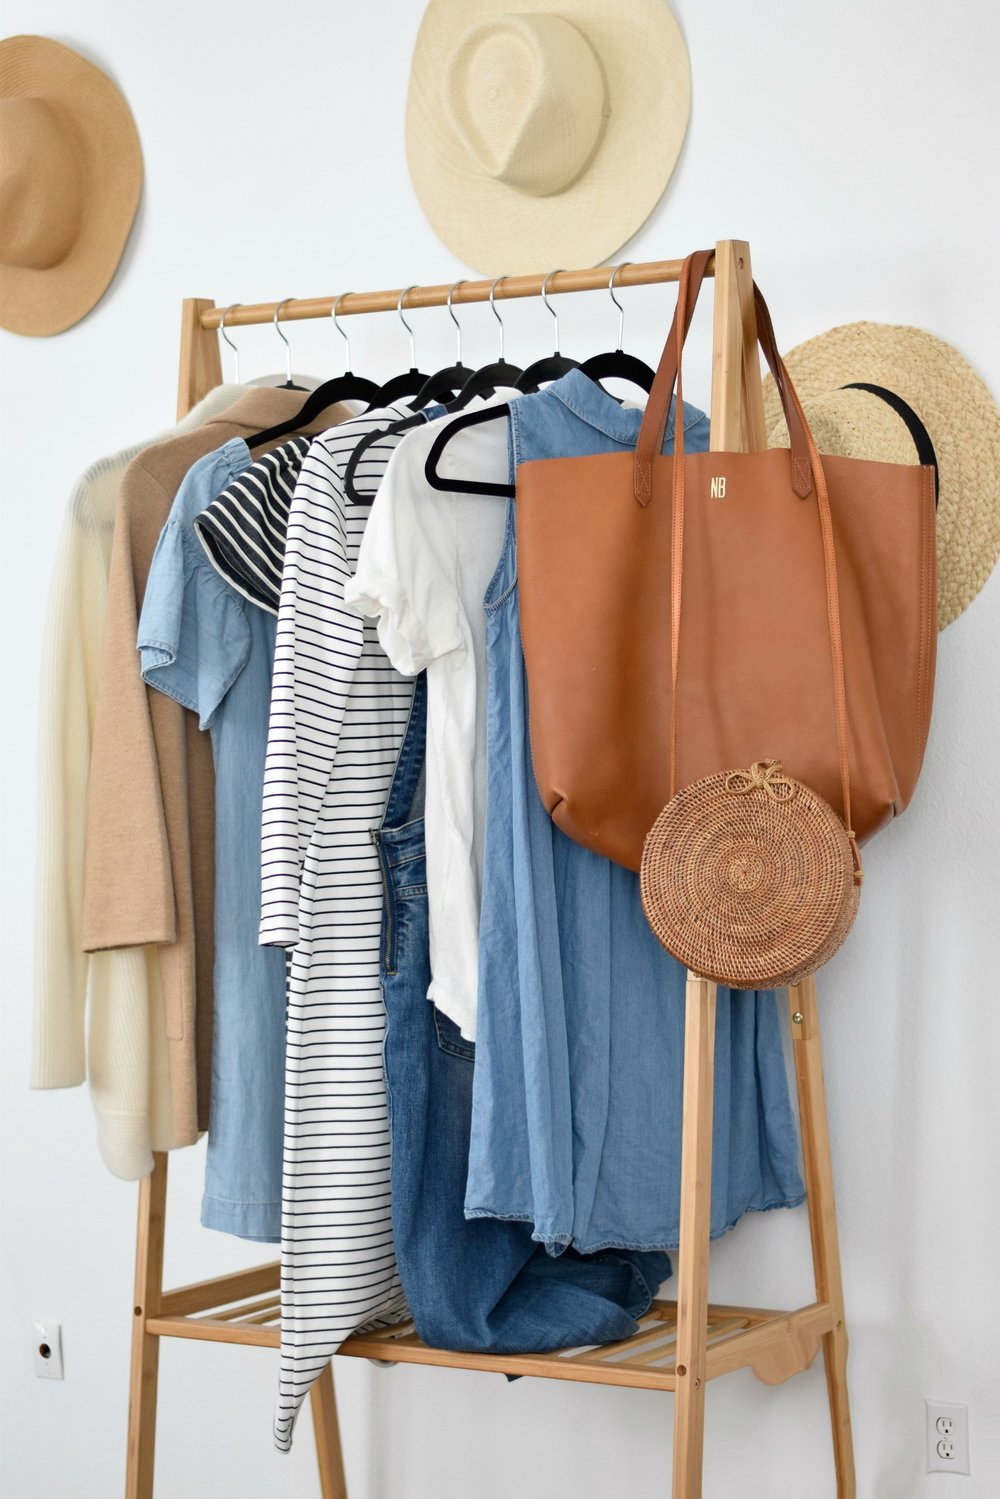 Closet Detox  The Myth & Realities of Too Much Stuff in Your Closet.jpg